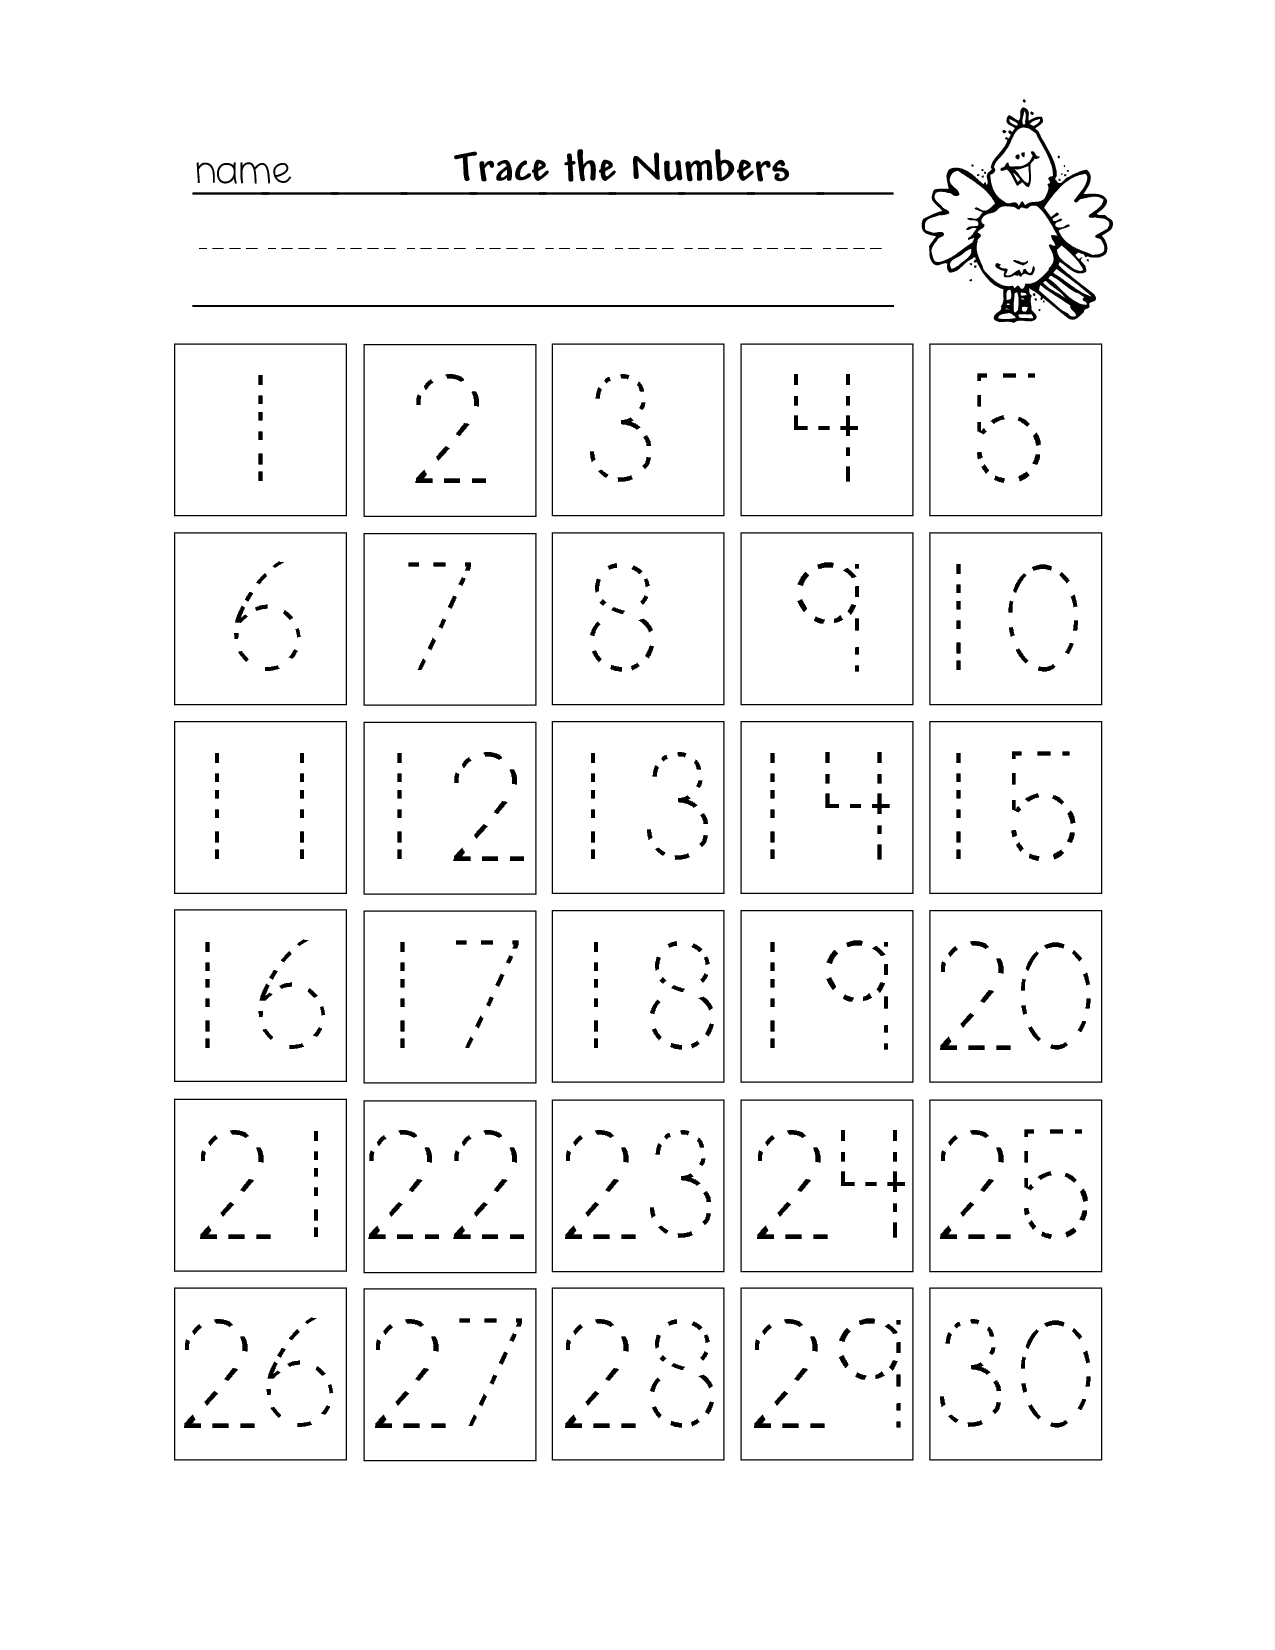 Common Worksheets ?» Tracing Number Worksheets - Preschool and ...